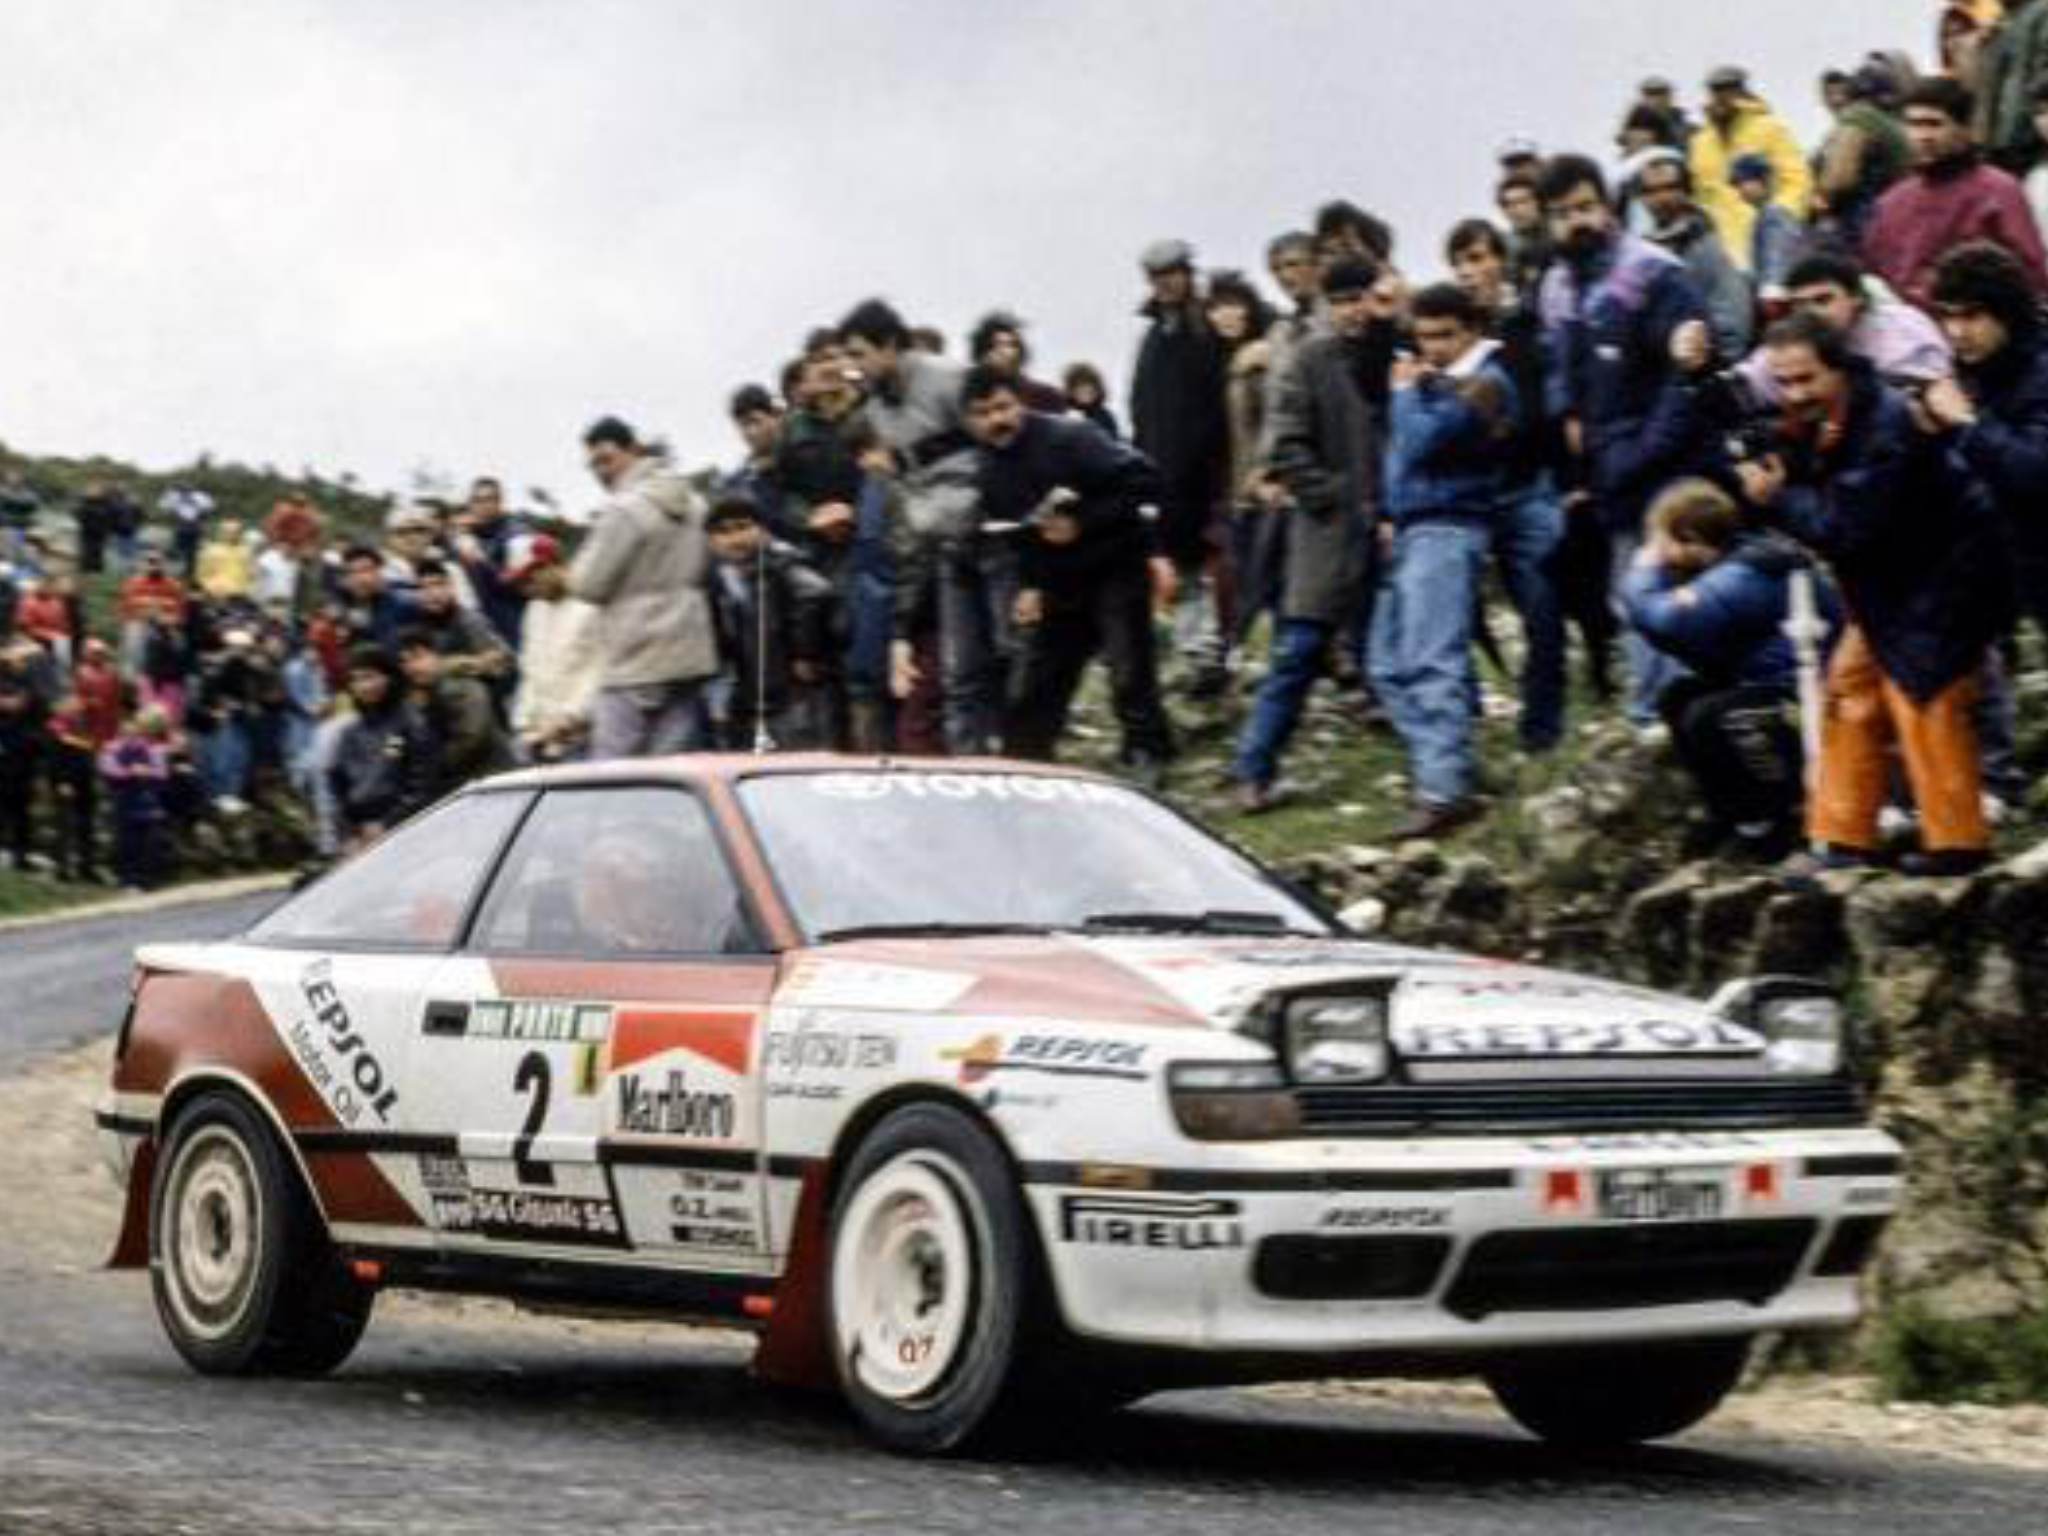 Pin by Billy Garrett on Old Skool Rally Cars | Pinterest | Rally ...